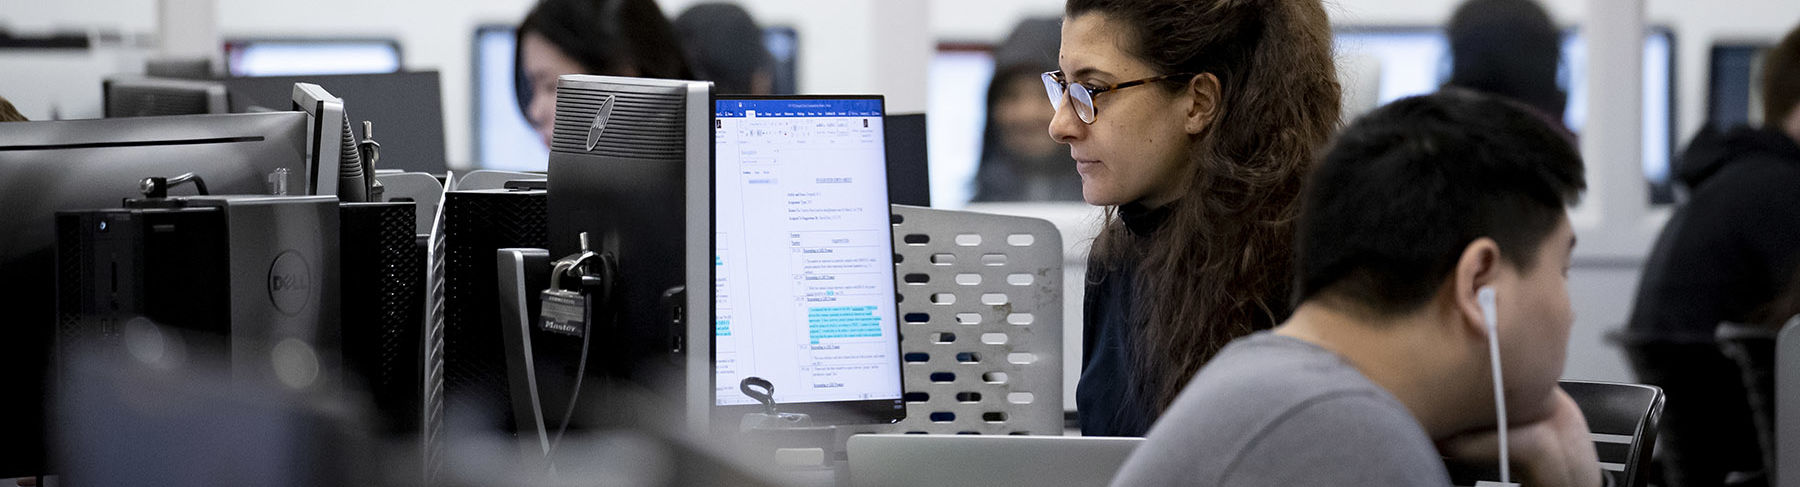 A woman sitting and looking at a computer screen in a technology lab.